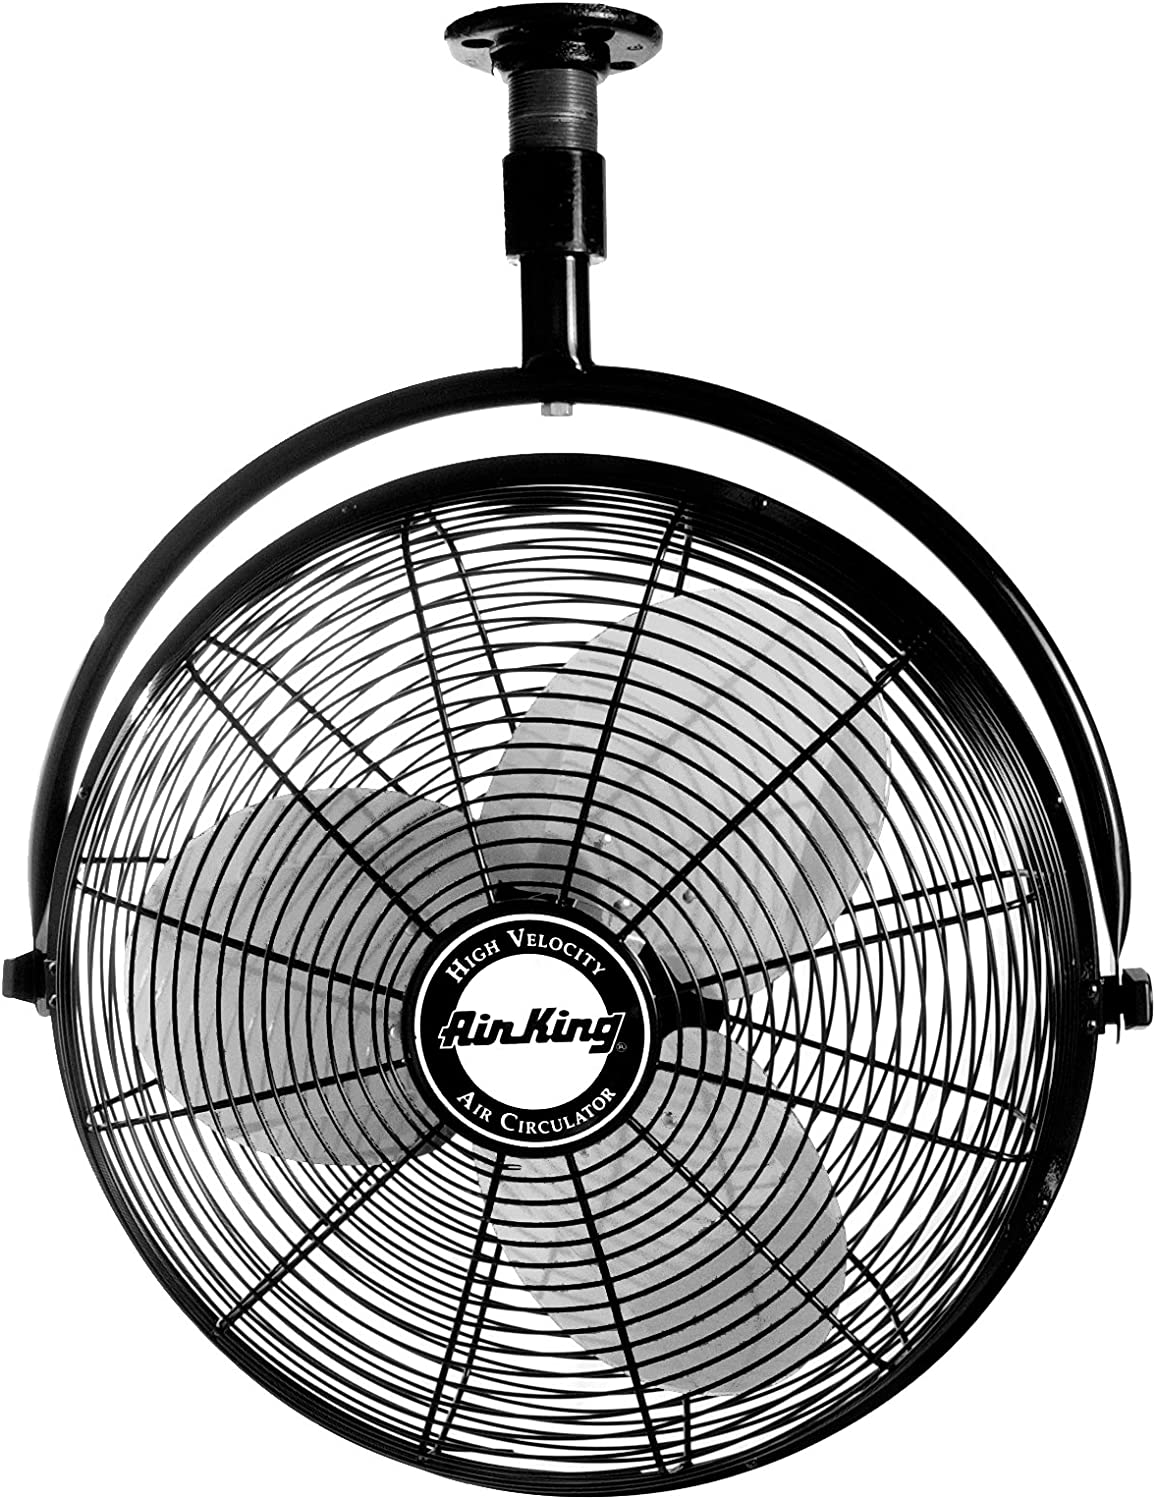 Air King 9320 20-Inch 1 6-Horsepower Industrial Grade Ceiling Mount Fan with 3,670-CFM, Black Finish